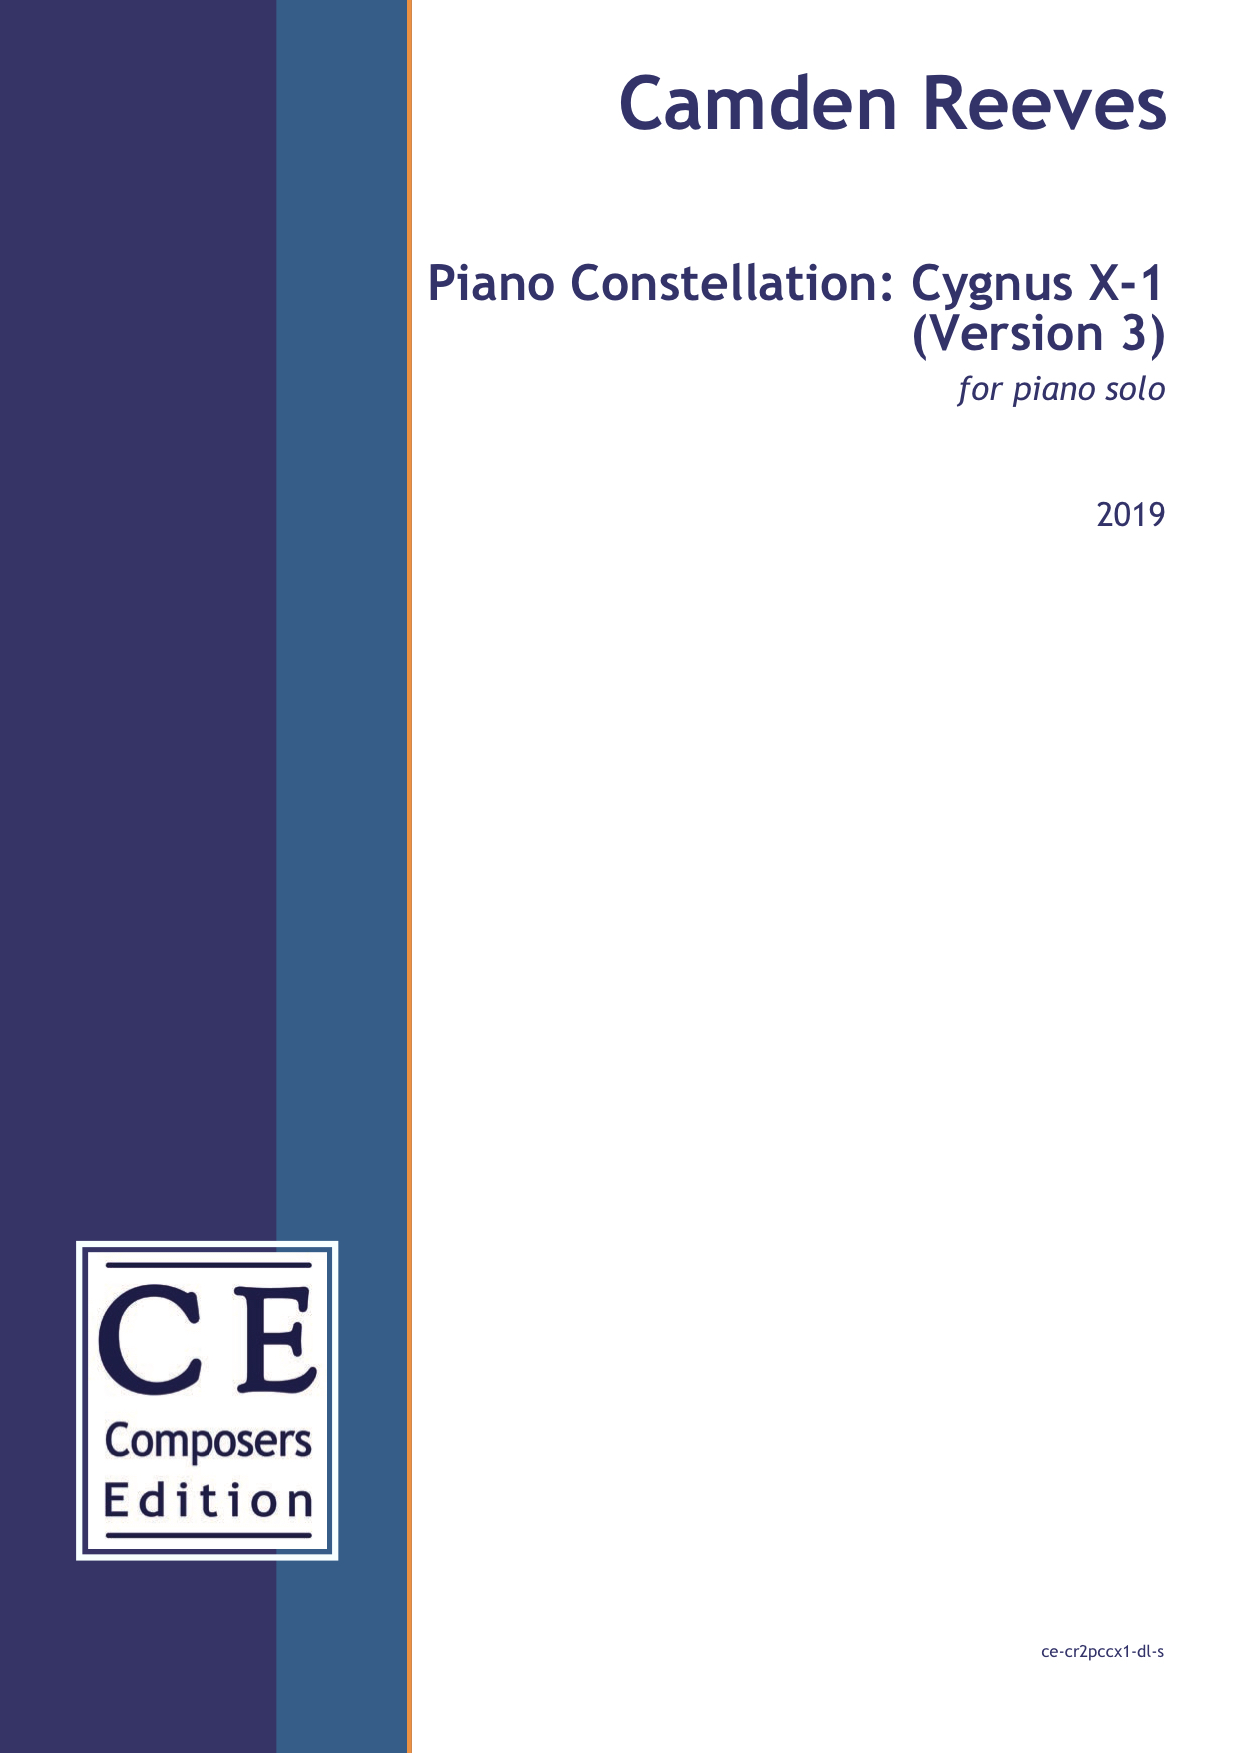 Camden Reeves: Piano Constellation: Cygnus X-1 (Version 3) for piano solo